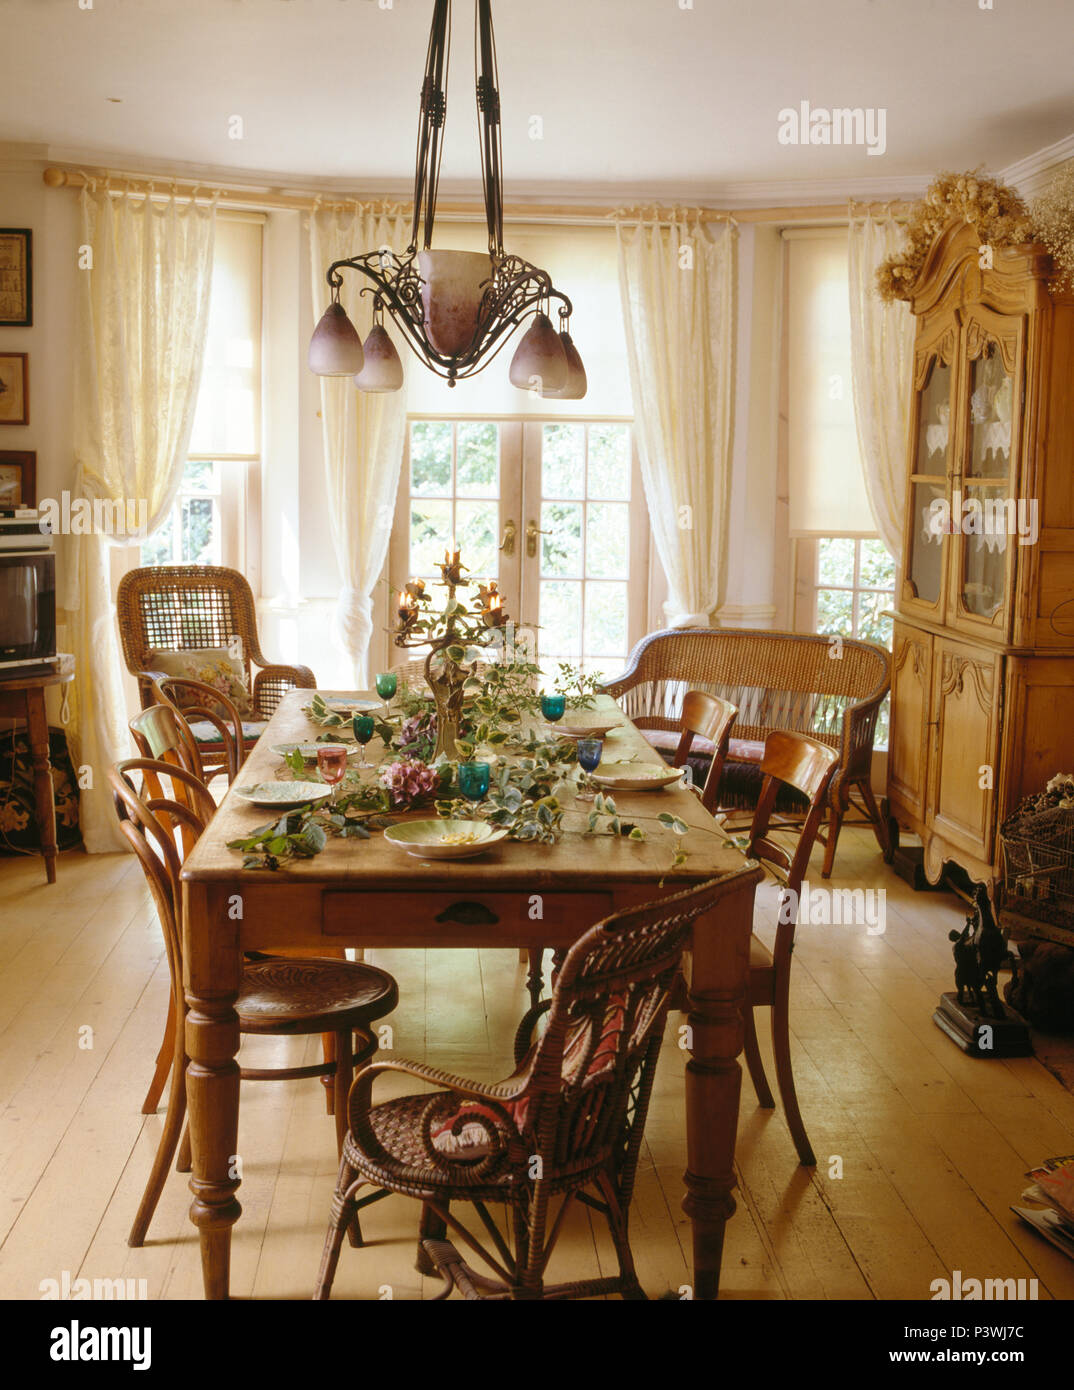 Art Nouveau Style Light Above Old Pine Table And Vintage Chairs In Country Dining Room With Wooden Floor White Drapes